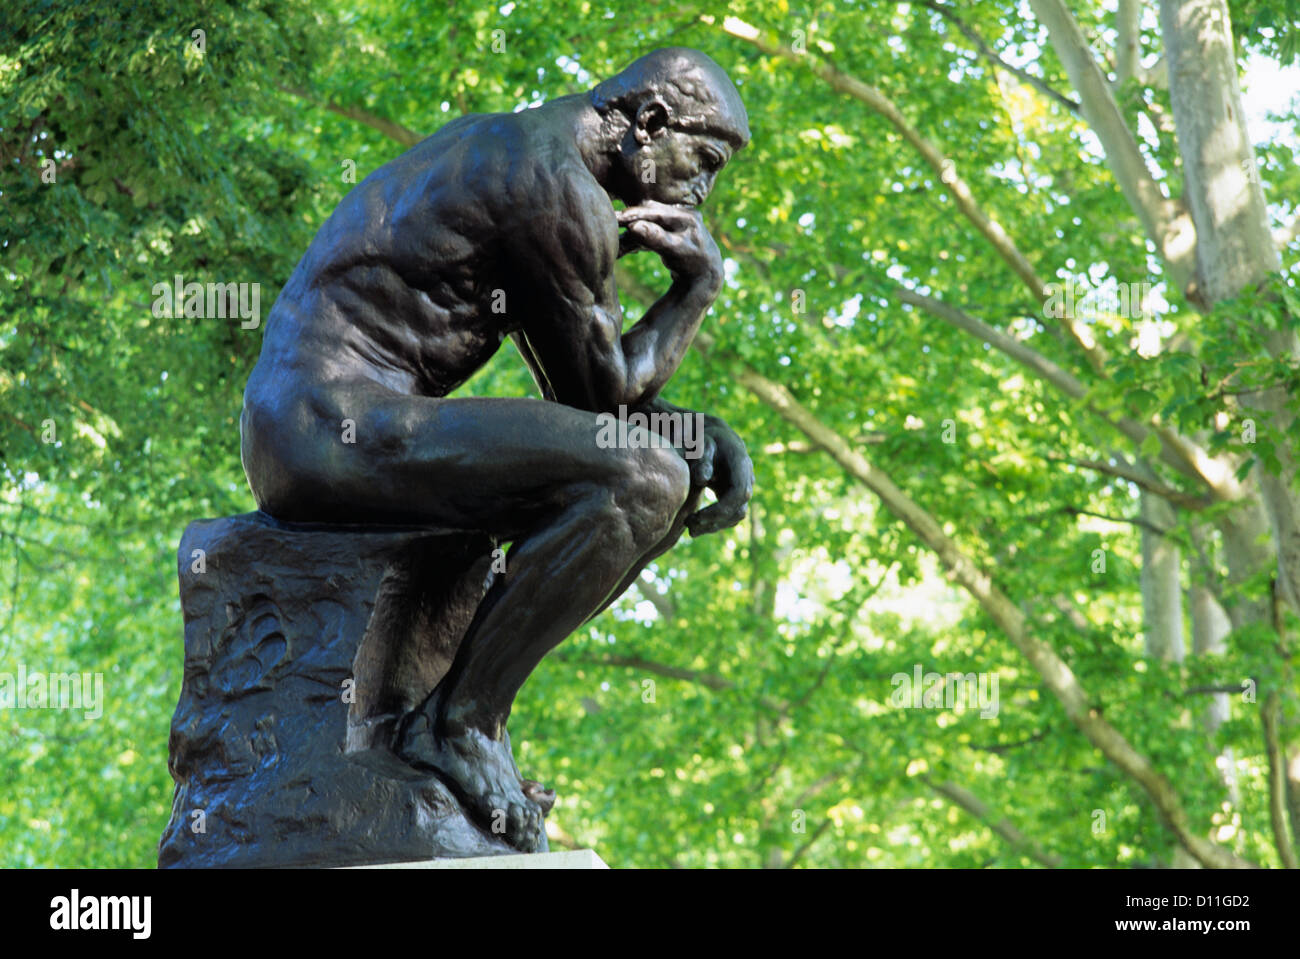 The Thinker Sculpture By Auguste Rodin At Rodin Museum